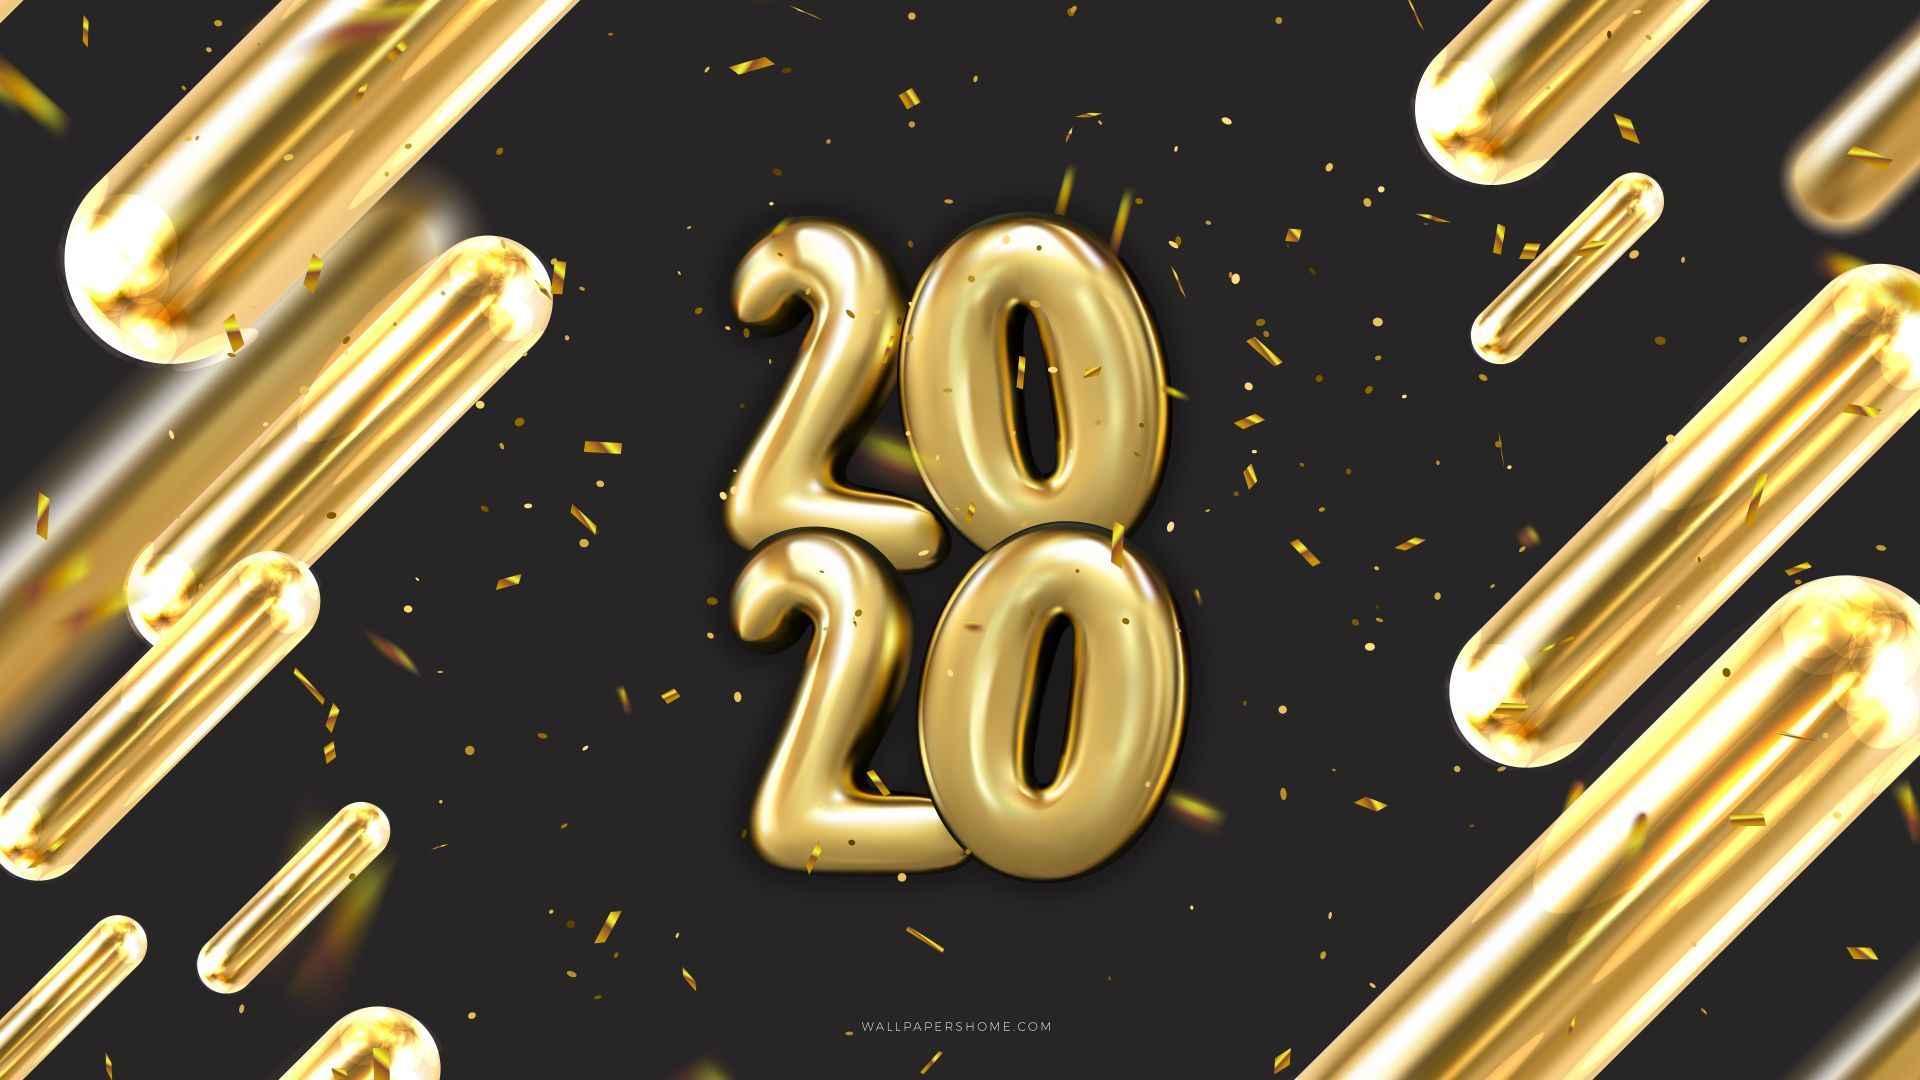 Happy New Year 2020 download free wallpapers for pc in hd